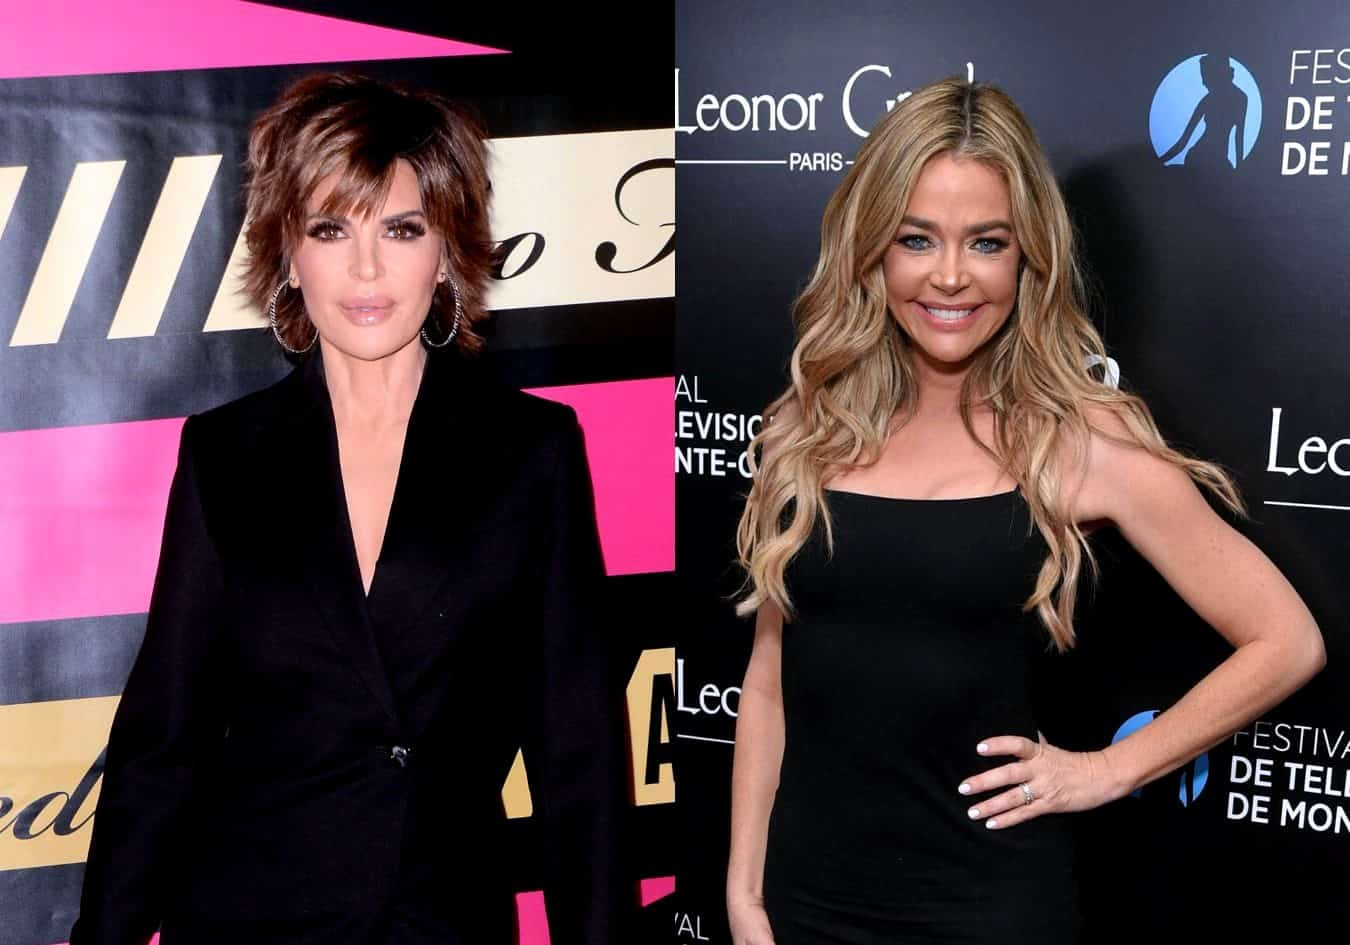 """RHOBH's Lisa Rinna Seemingly Slams Denise Richards for Being a """"Phony"""" Friend While Also Suggesting That She Has Now Received a Letter of Cease and Desist From Her Cast Mate"""